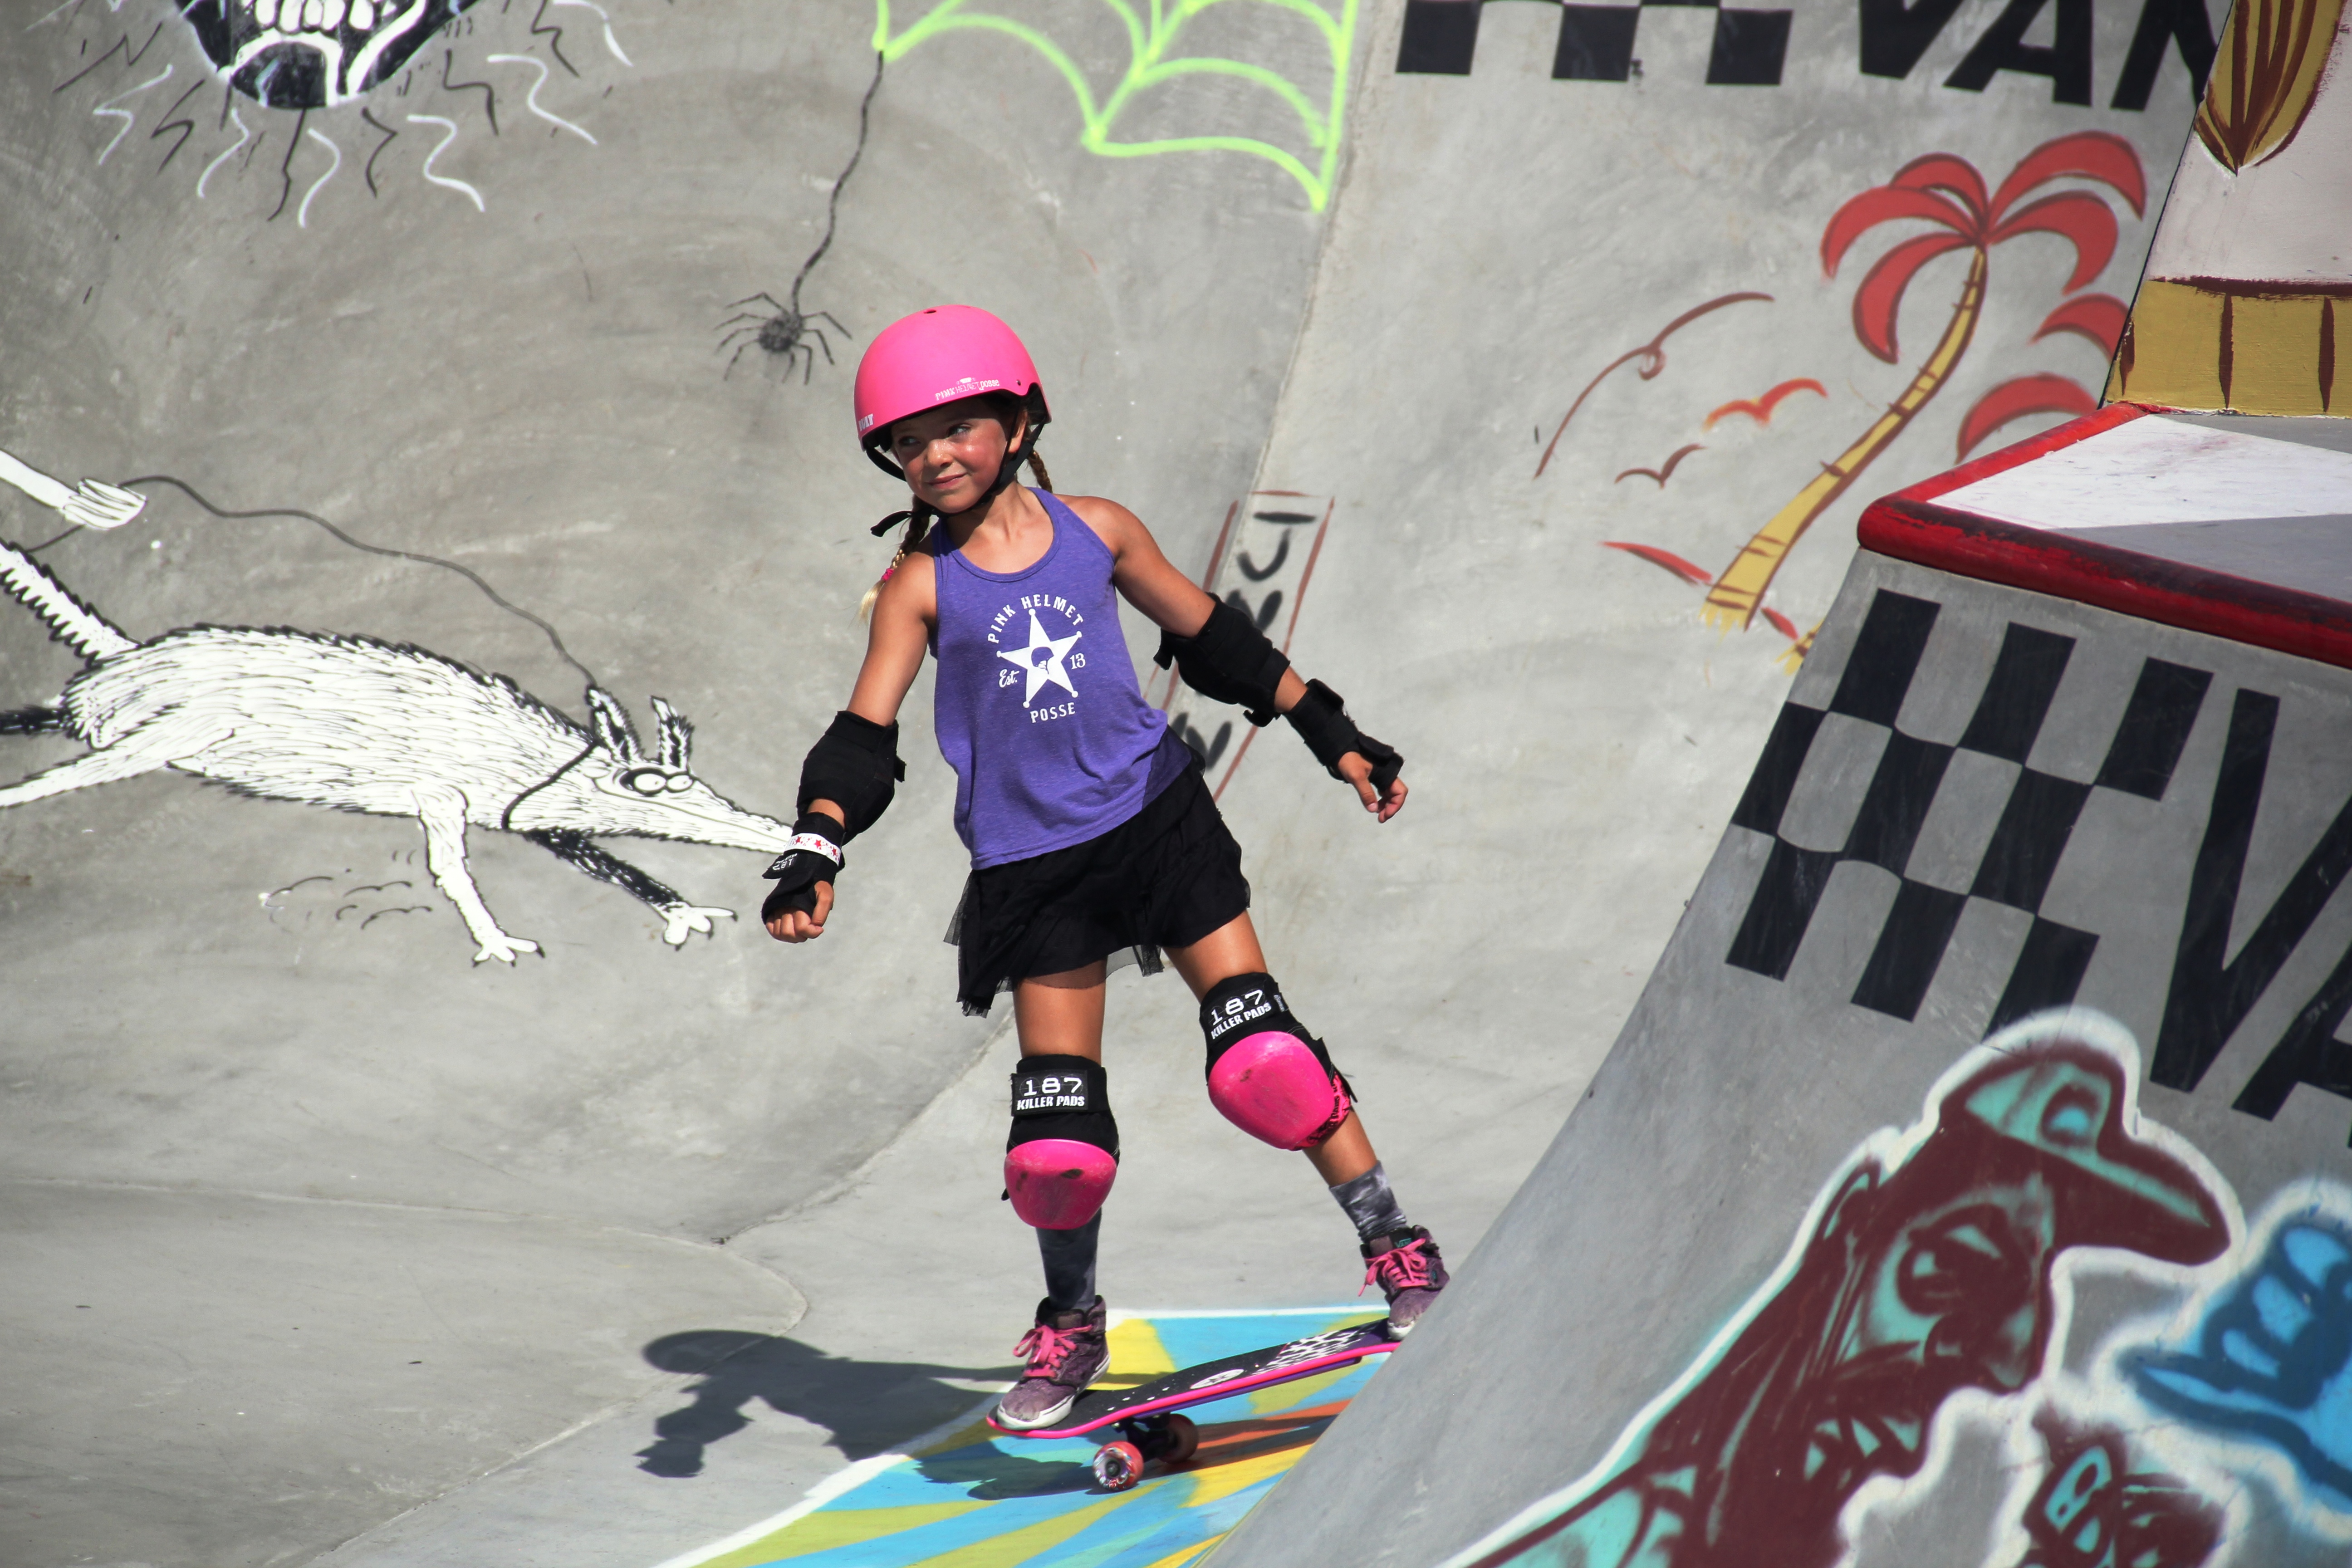 Bella Kenworthy, a 7-year-old from Dana Point, is part of the Pink Helmet Posse, which travels around Southern California to skateparks and tournaments in hopes of getting more girls involved in skateboarding. Here, Bella skates at the U.S. Open of Surfing in Huntington Beach. Photo: Sean Robb